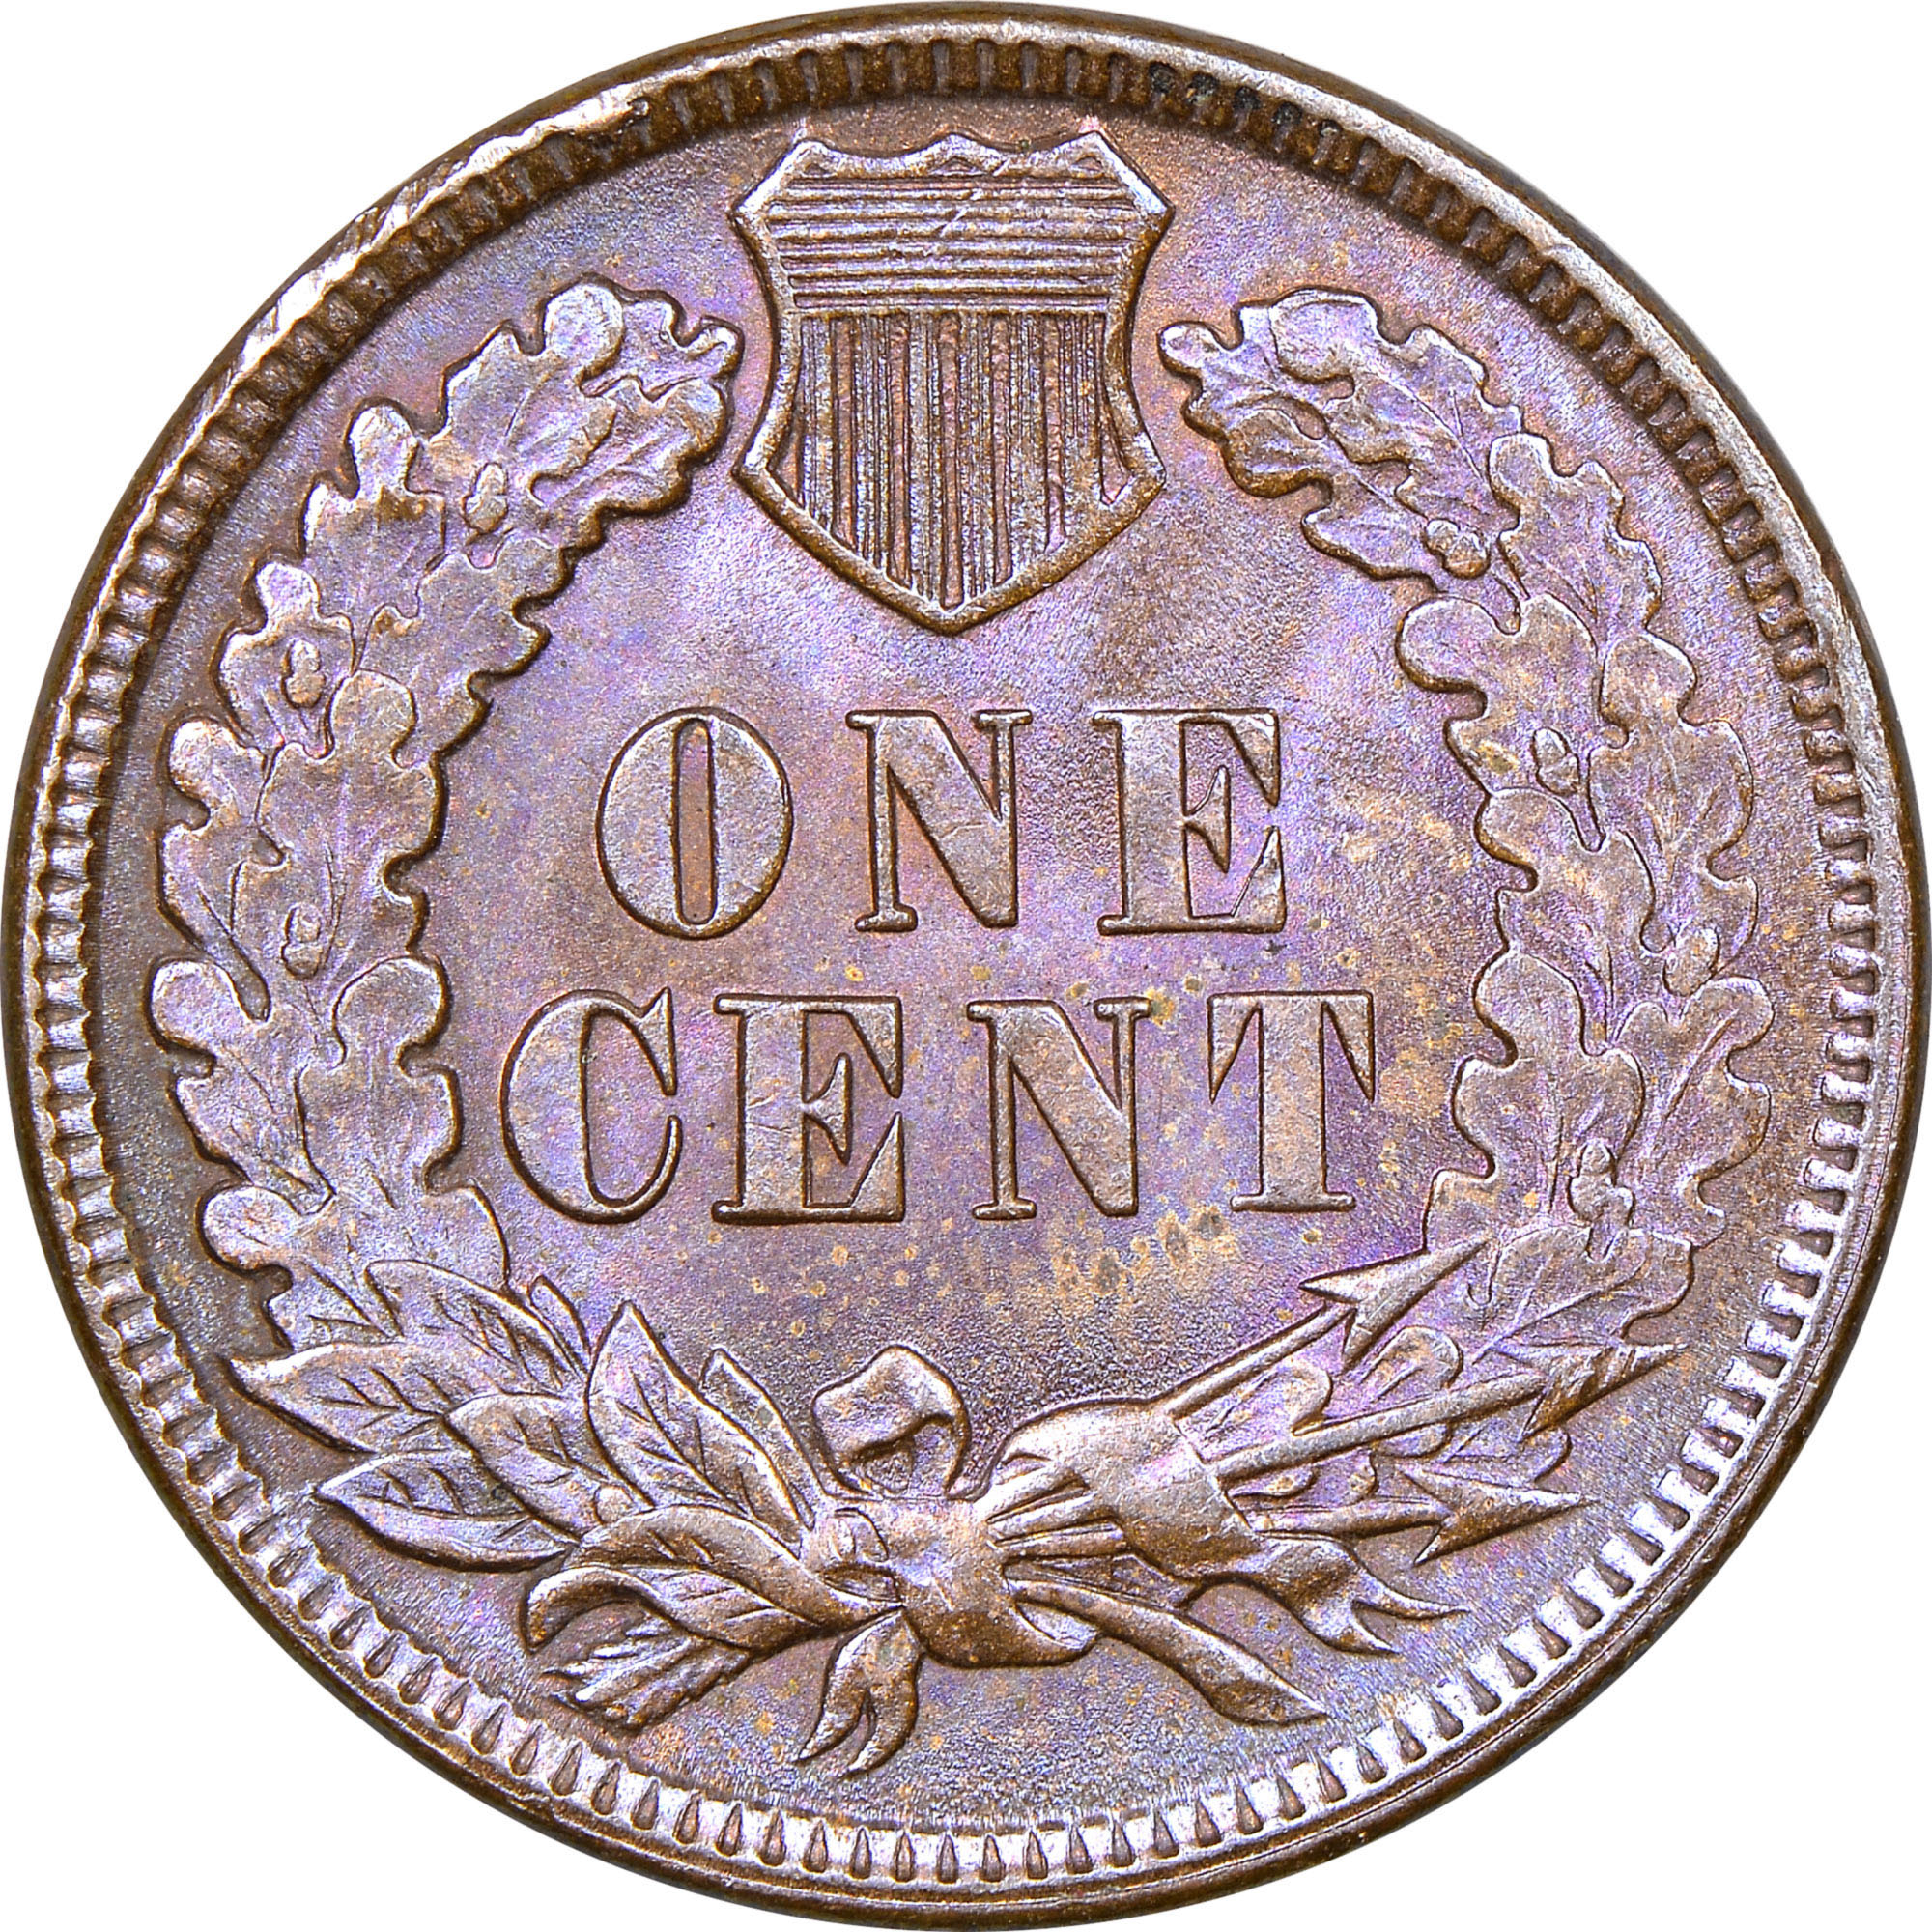 Circulated US Coin 1890 Indian Head Cent Penny